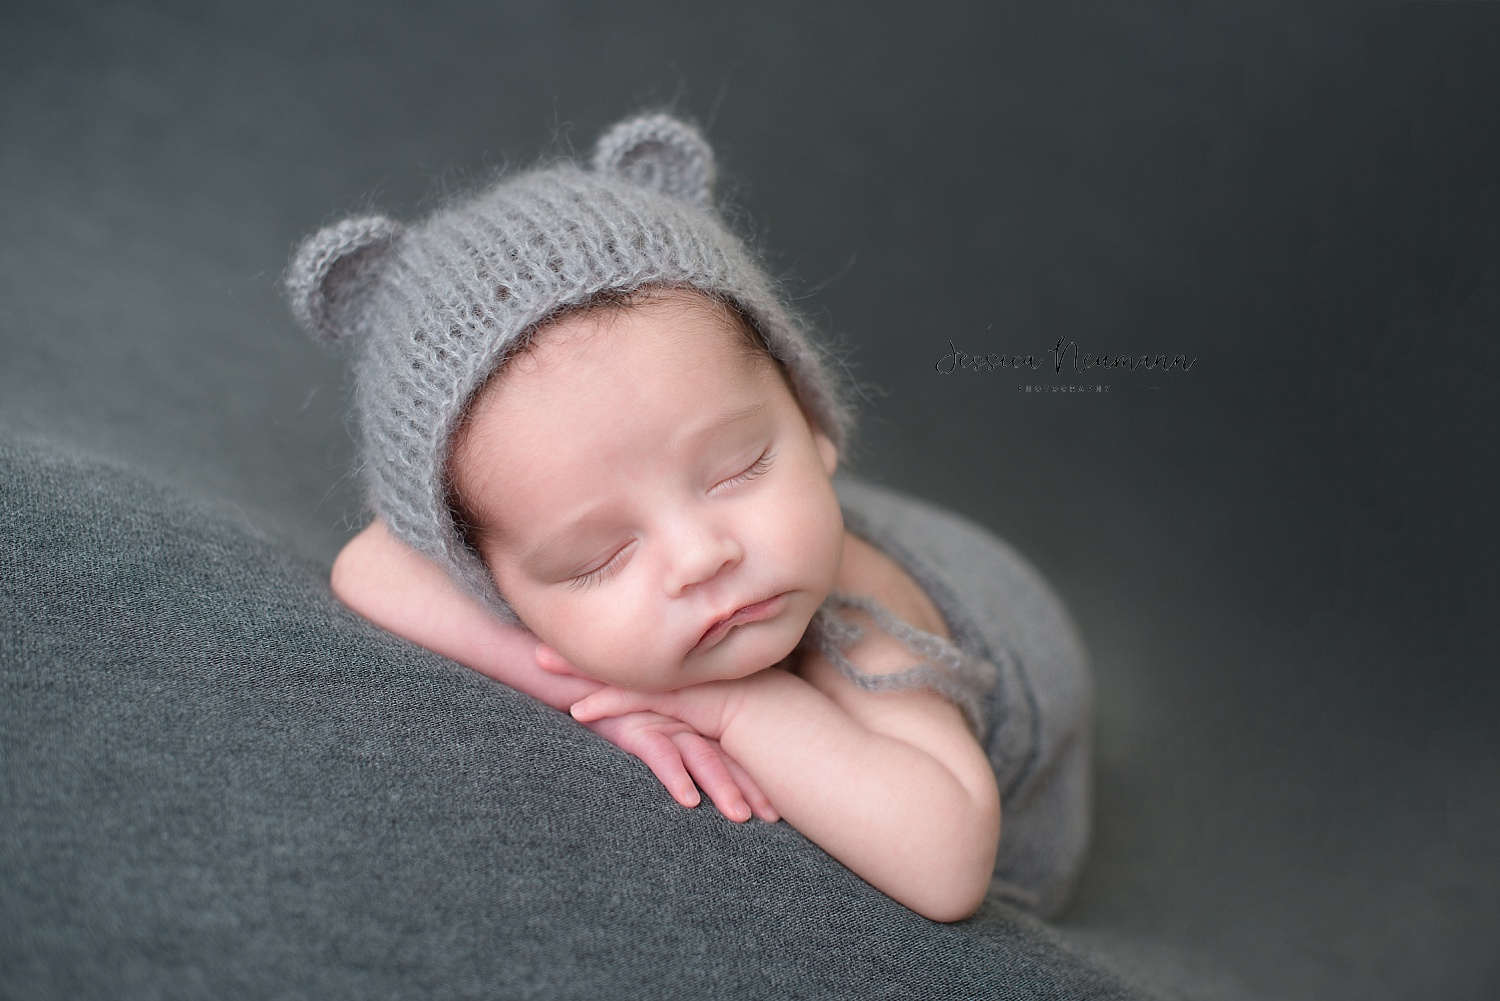 NewMarketMDNewbornphotography_WashingtonDCNewborn_FrederickMDPhotographer_Newbornphotos